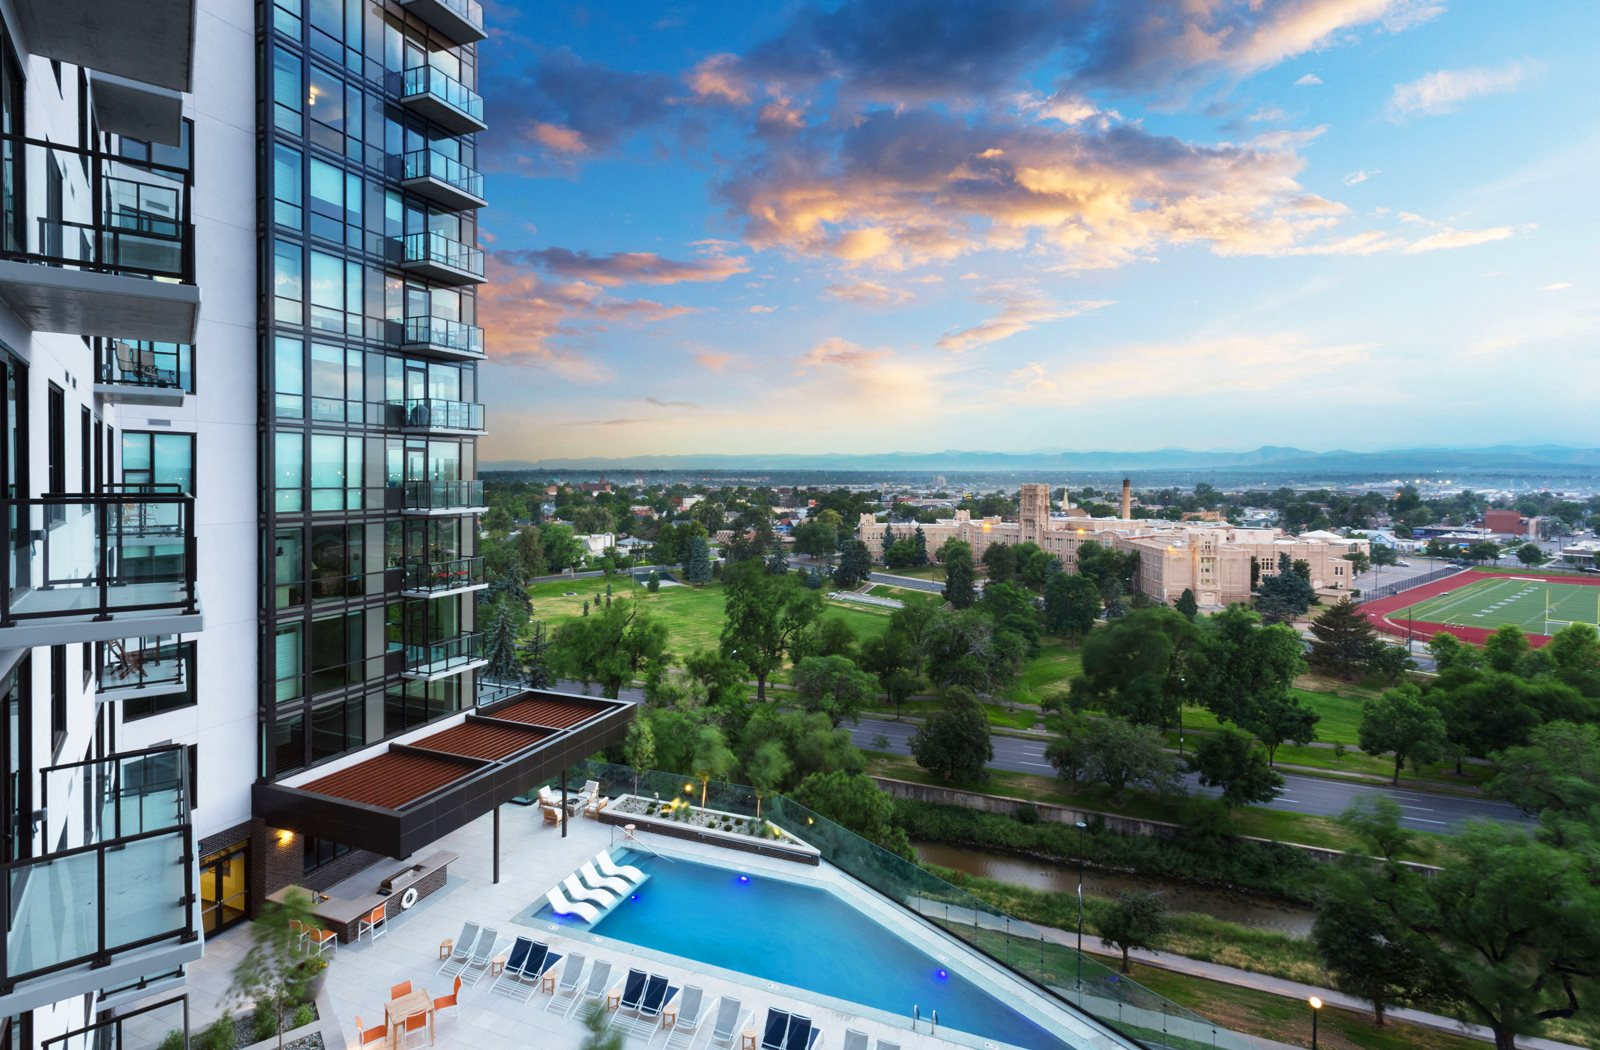 Infinity Edge Pool Complete with Fire Pit at 1000 Speer by Windsor, Denver